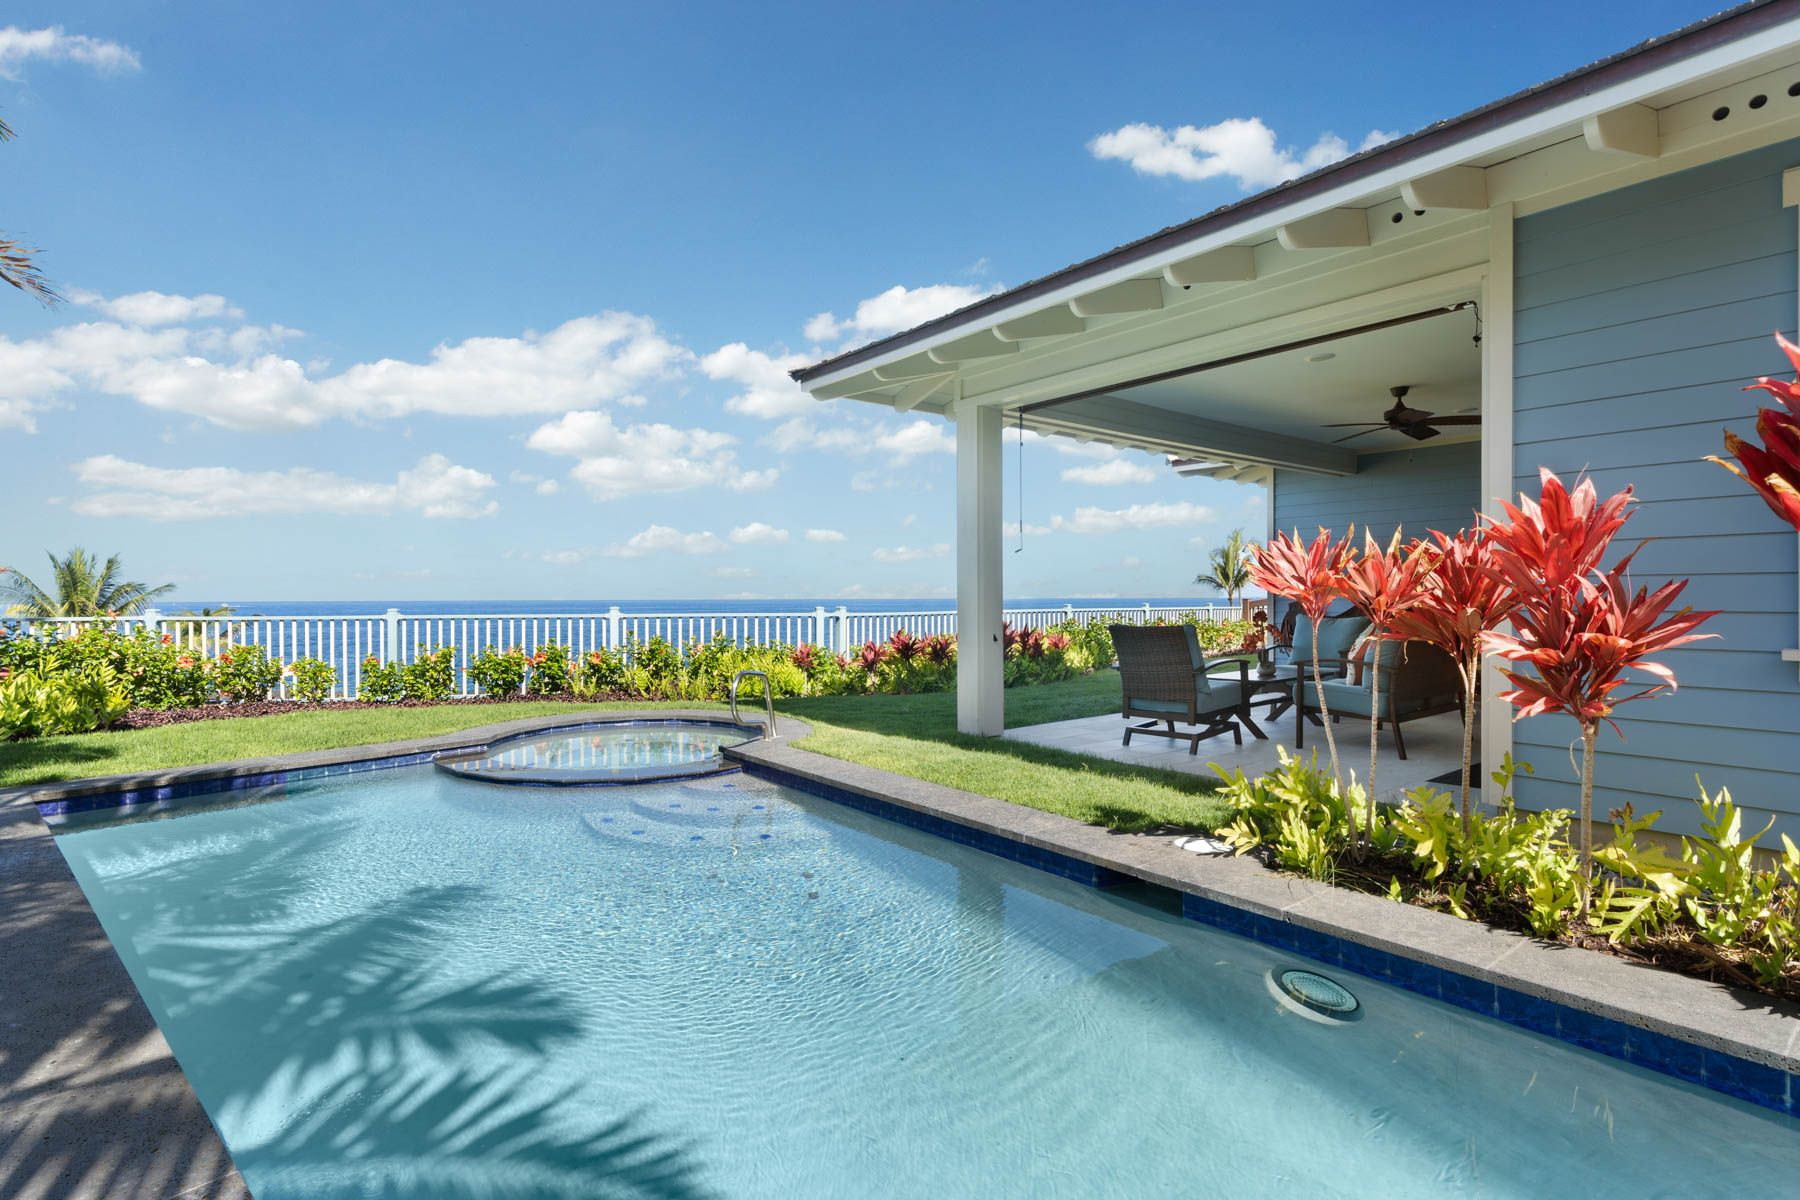 Single Family Home for Active at Holua Kai @ Keauhou 78-7190 Kaleiopapa St. Kailua-Kona, Hawaii 96740 United States